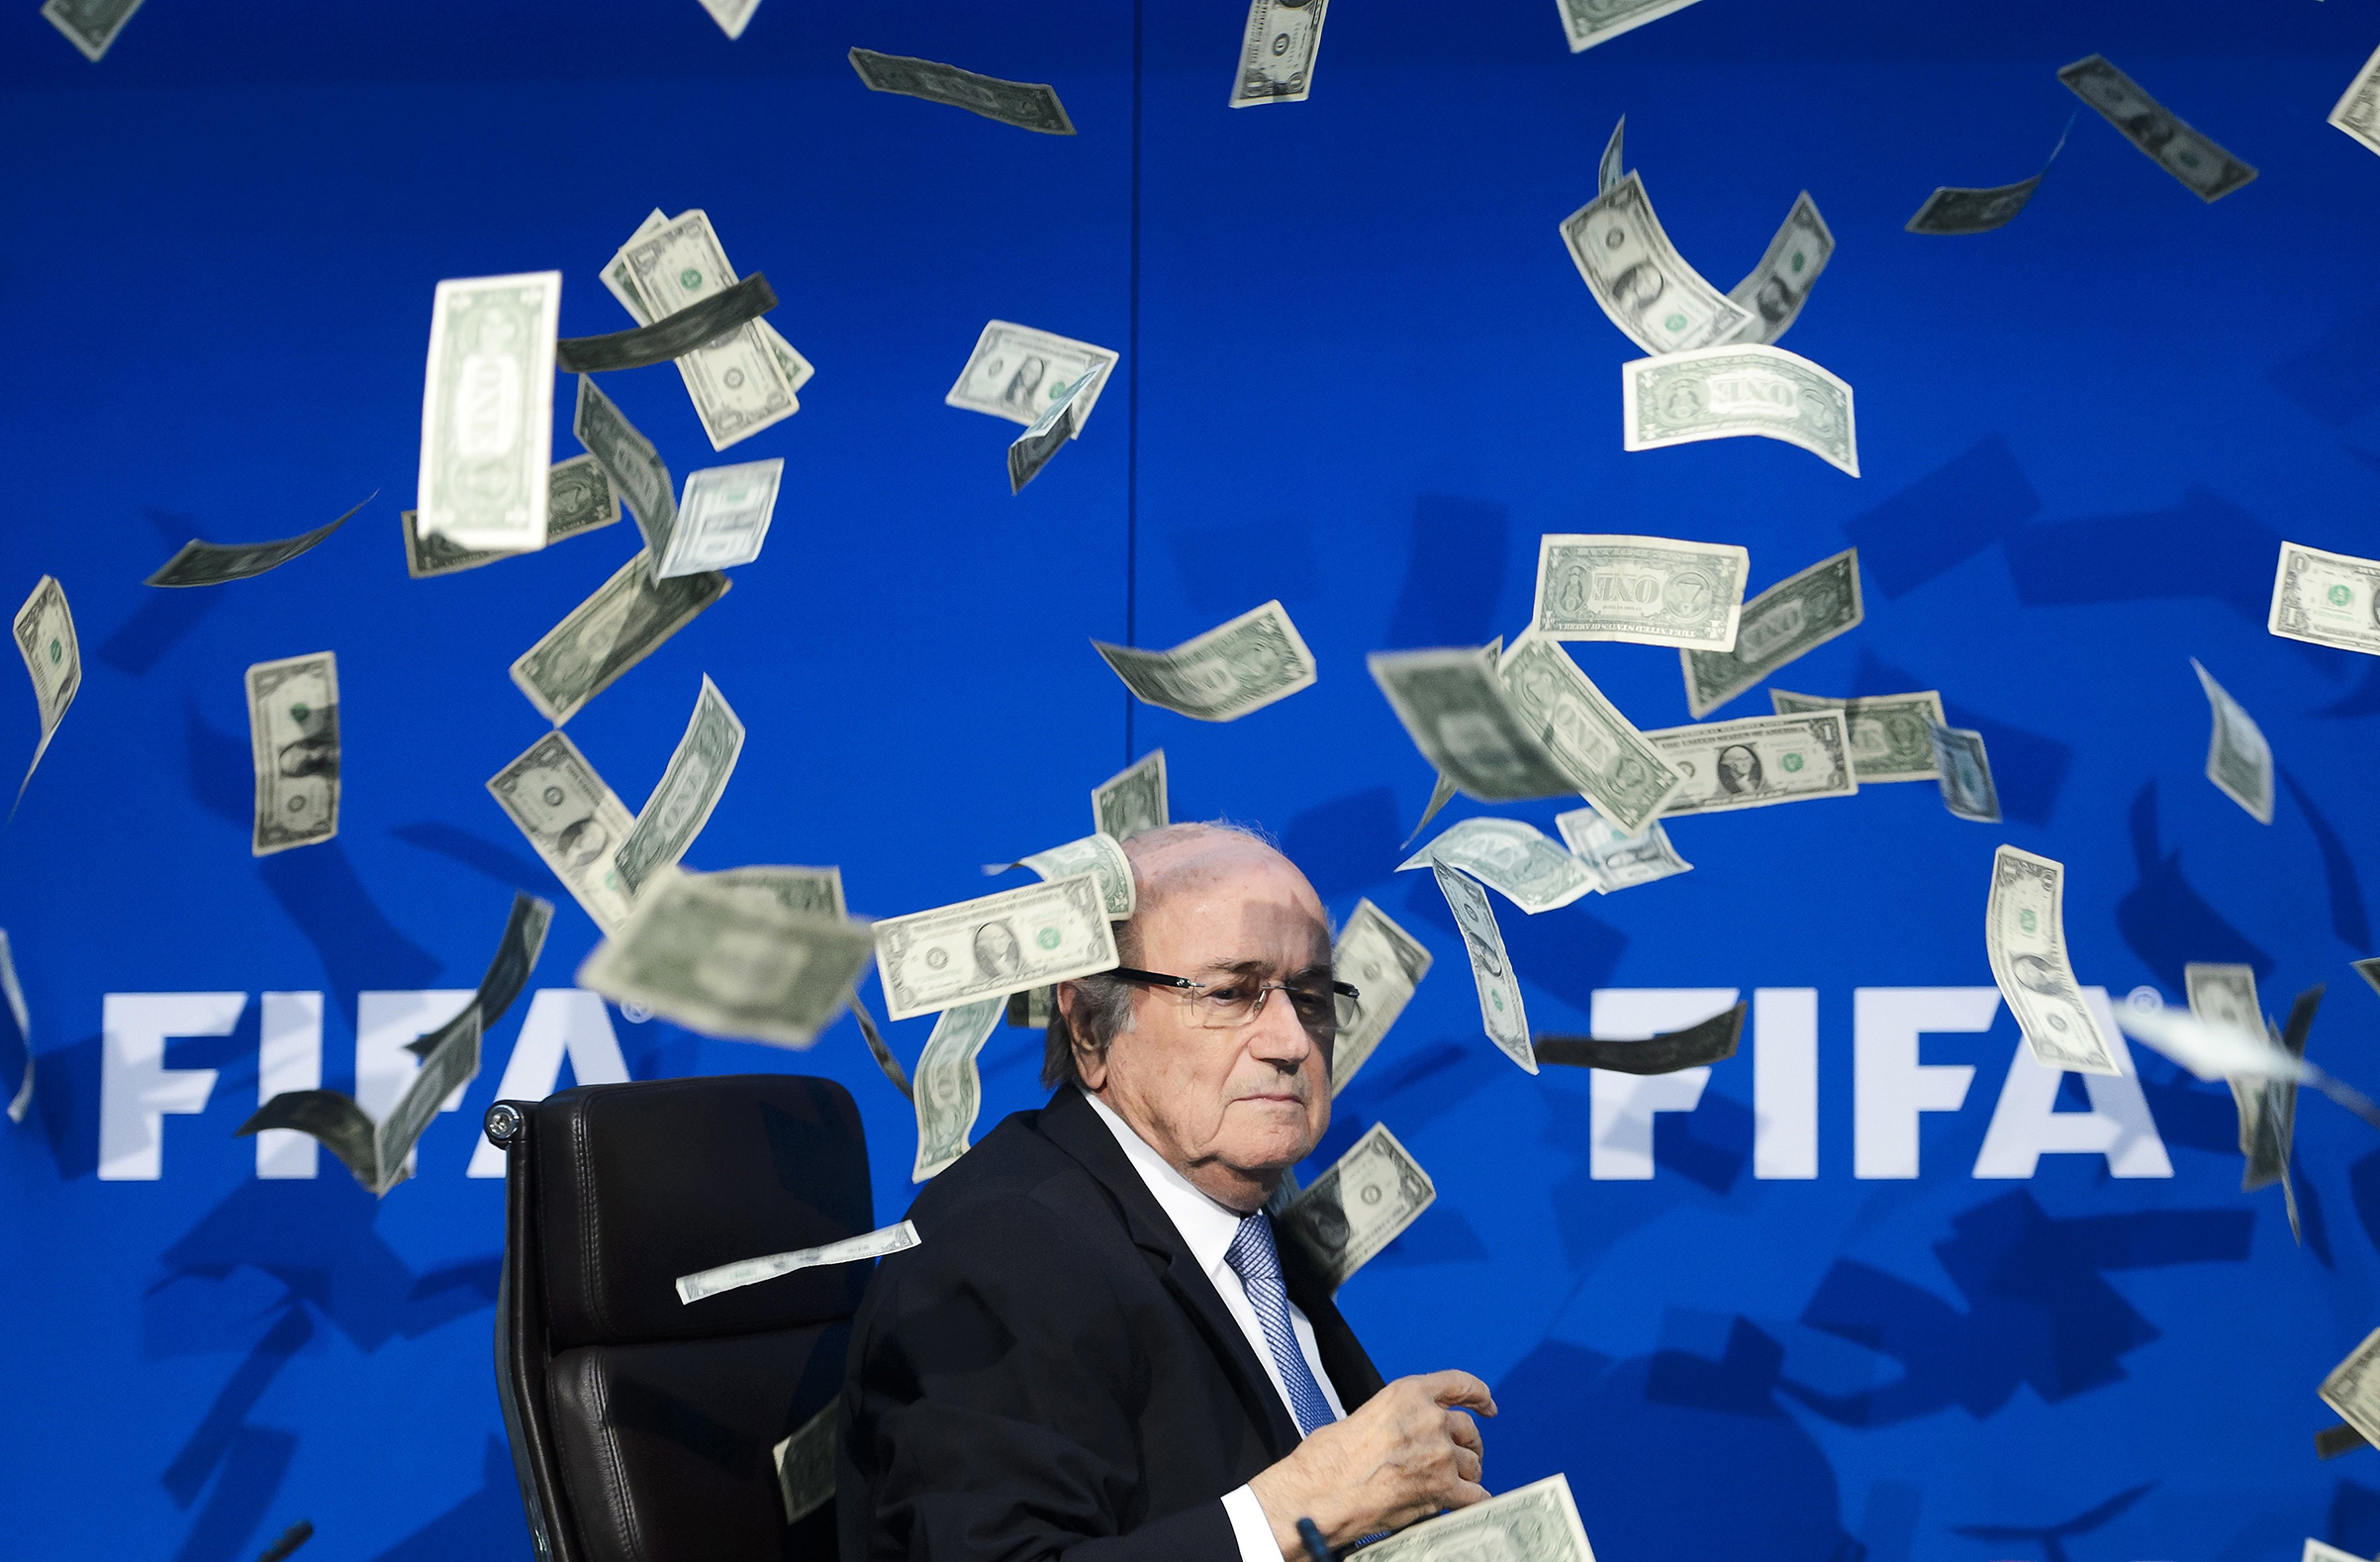 Then FIFA president Blatter endures a flurry of fake bills thrown by a comedian on July 20, 2015